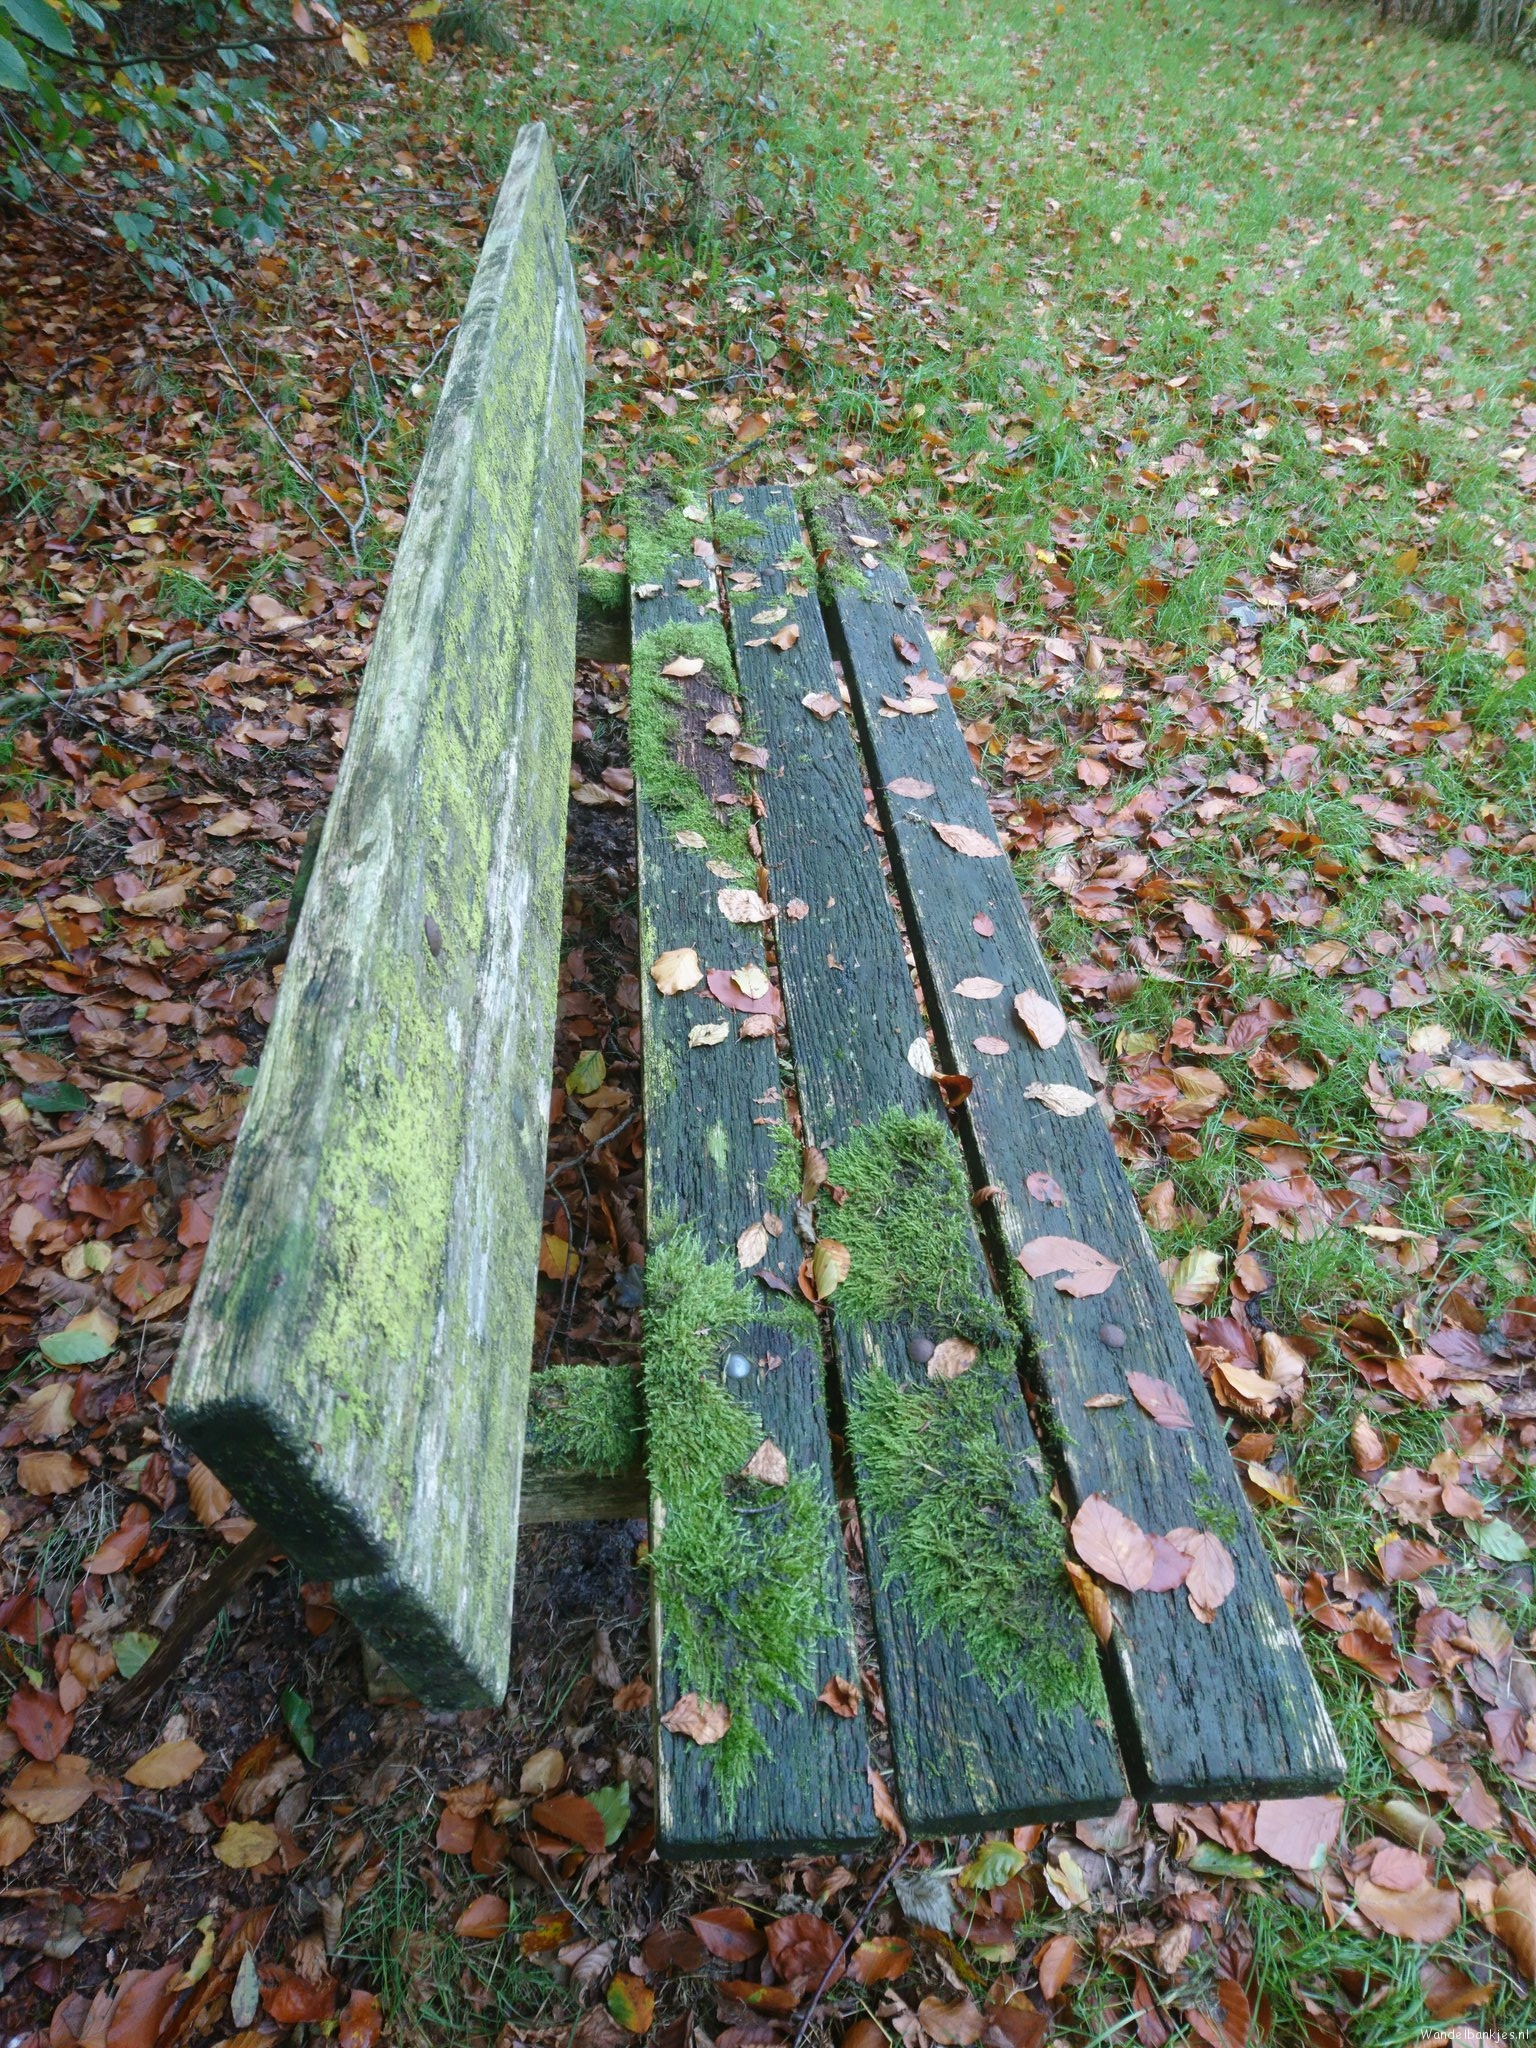 rt-walburgism-walking-benches-noaberpad-peat-deep-through-the-mosses-and-lichens-unobtrusive-present-in-the-beautiful-westerwolde-httpst